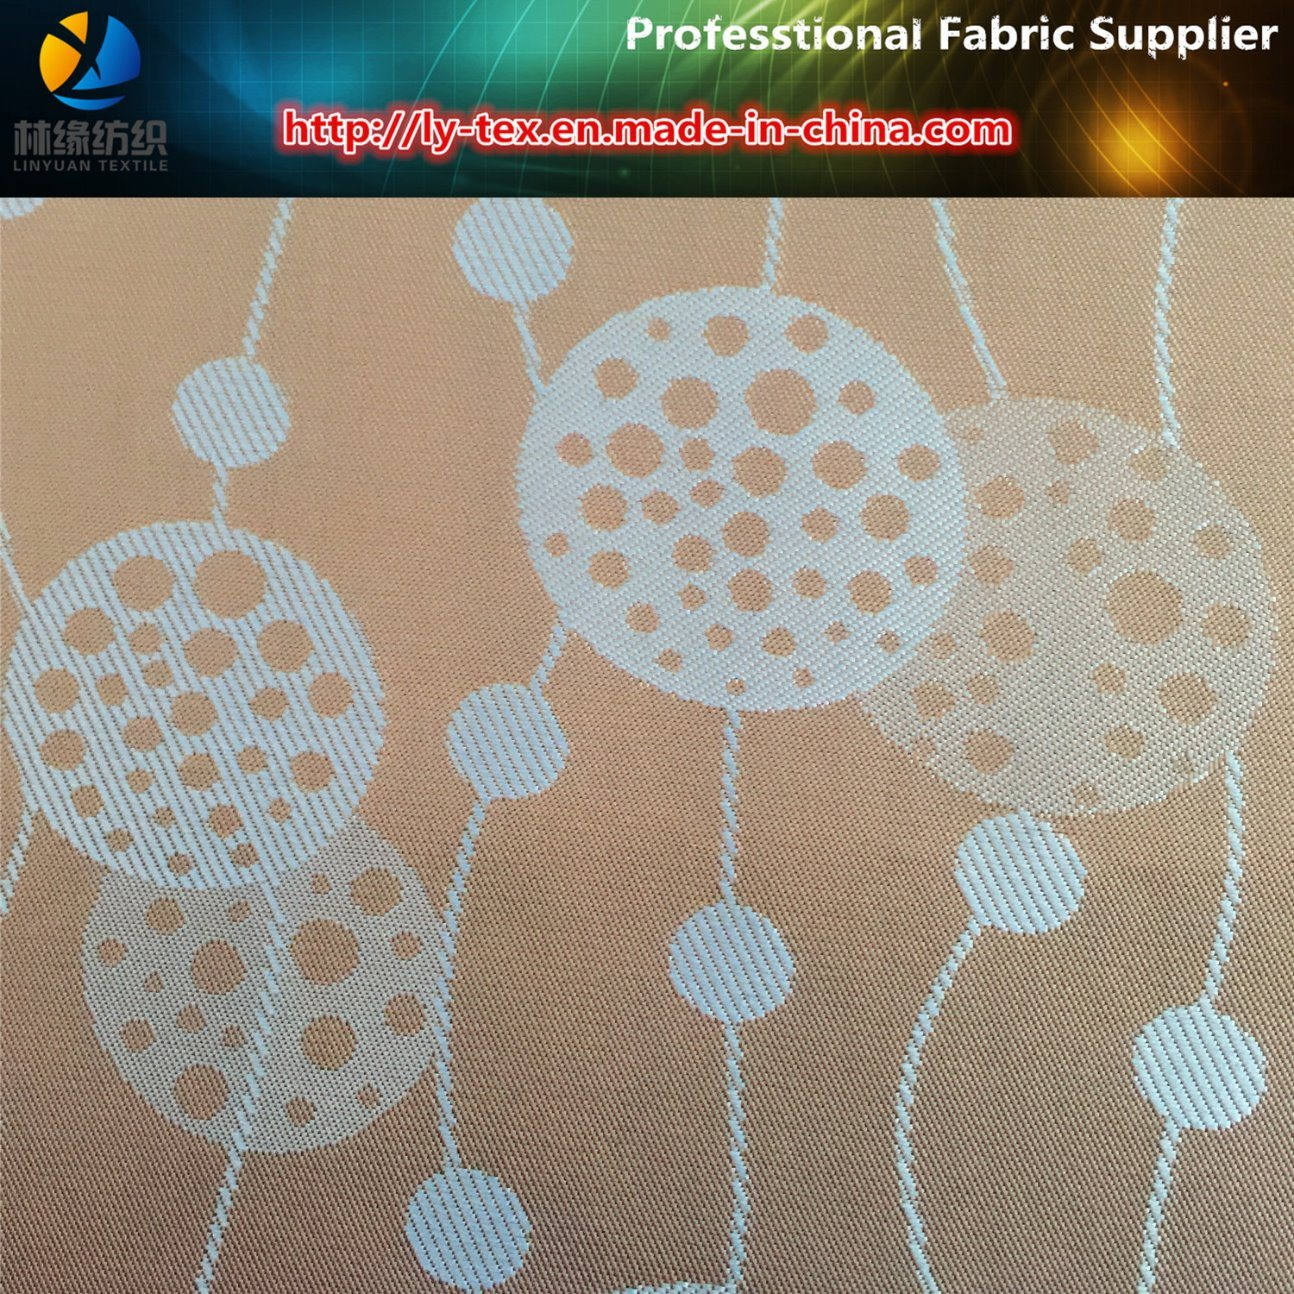 Polyester Fabric, Dandelion Jacquard, Twill Fabric, Lining Fabric (14) pictures & photos